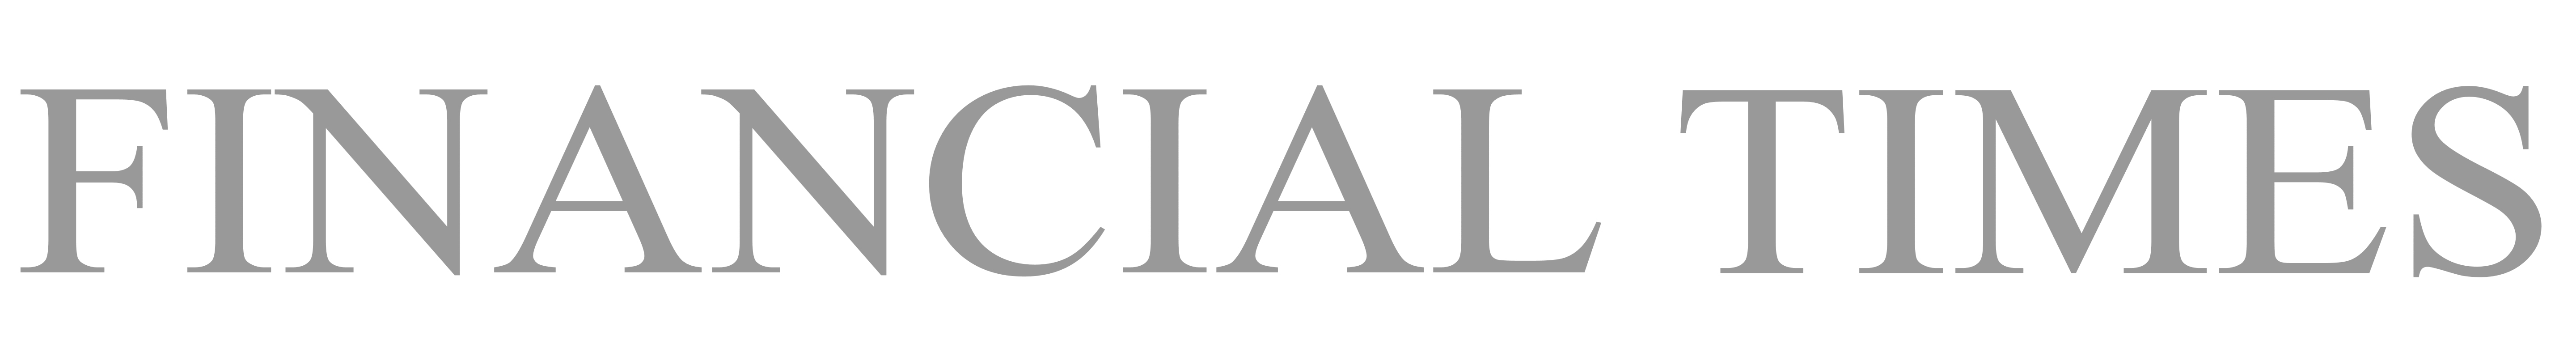 ft_the_financial_times_logo_wordmark